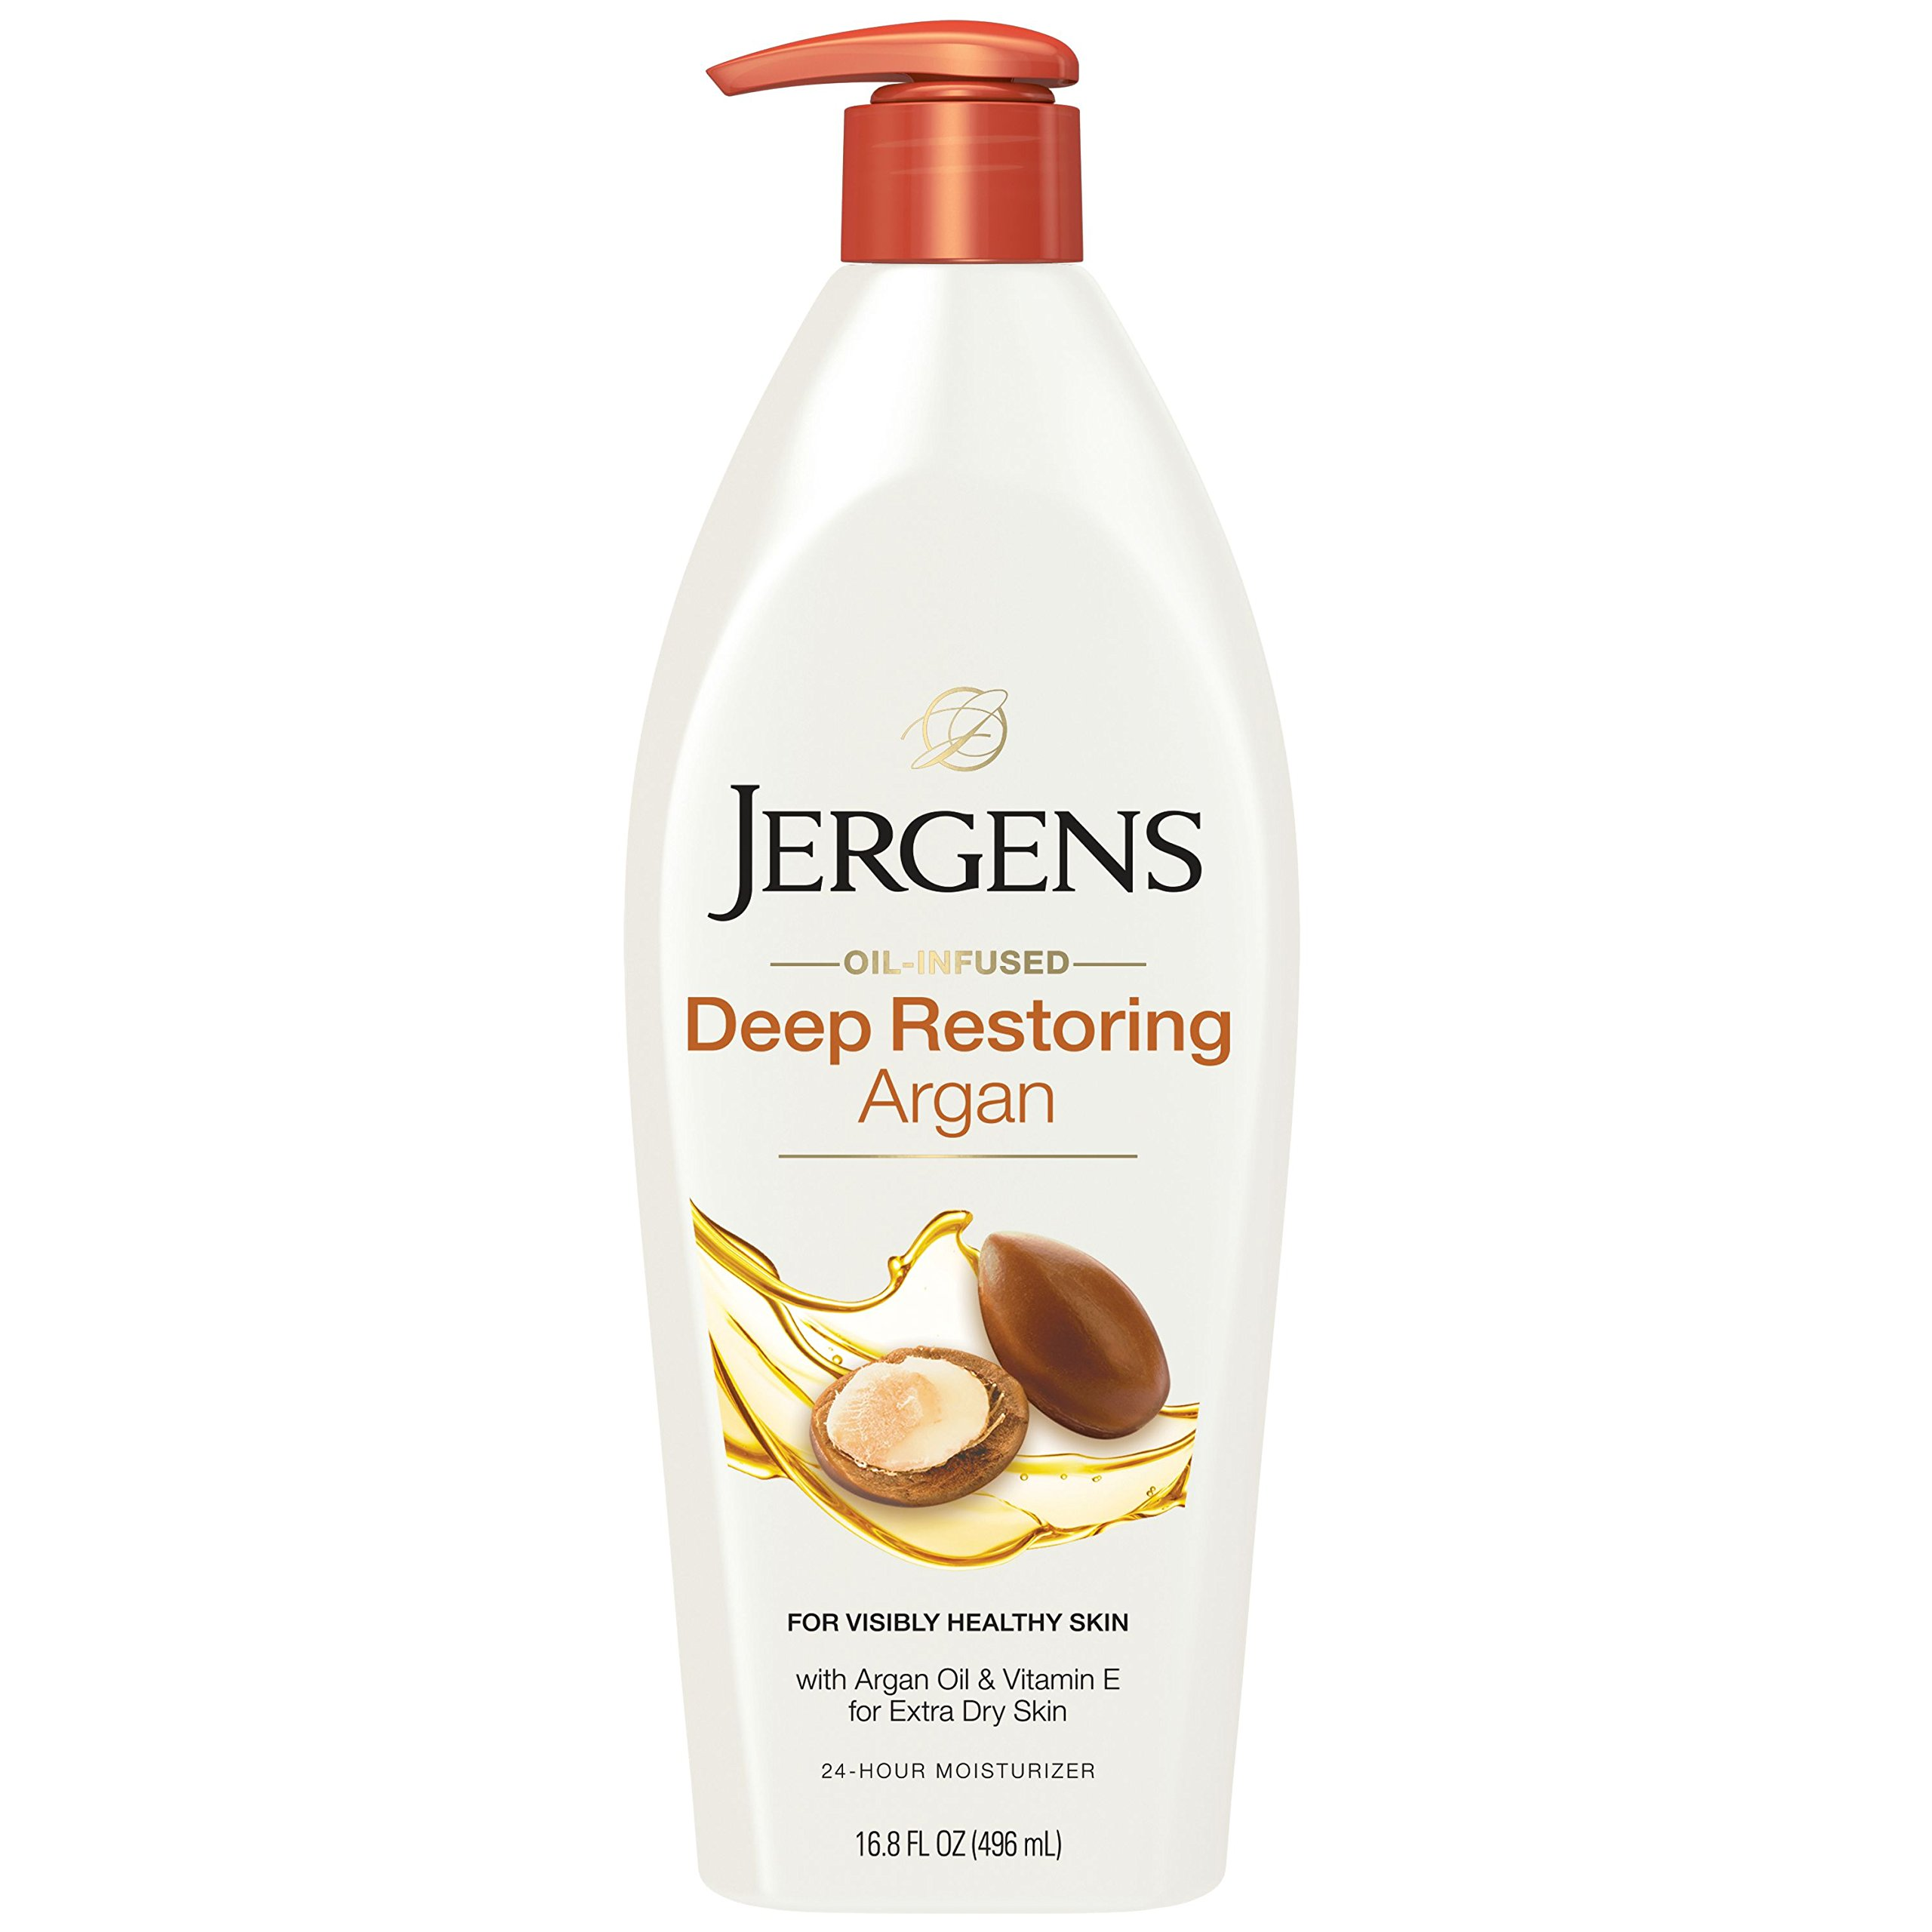 Jergens Deep Restoring Argan Oil Moisturizer, 16.8 Ounce, Soothing Full-Body Moisture, with Reviving Argan Oil and Vitamin E, Oil-Infused, Dermatologist Tested